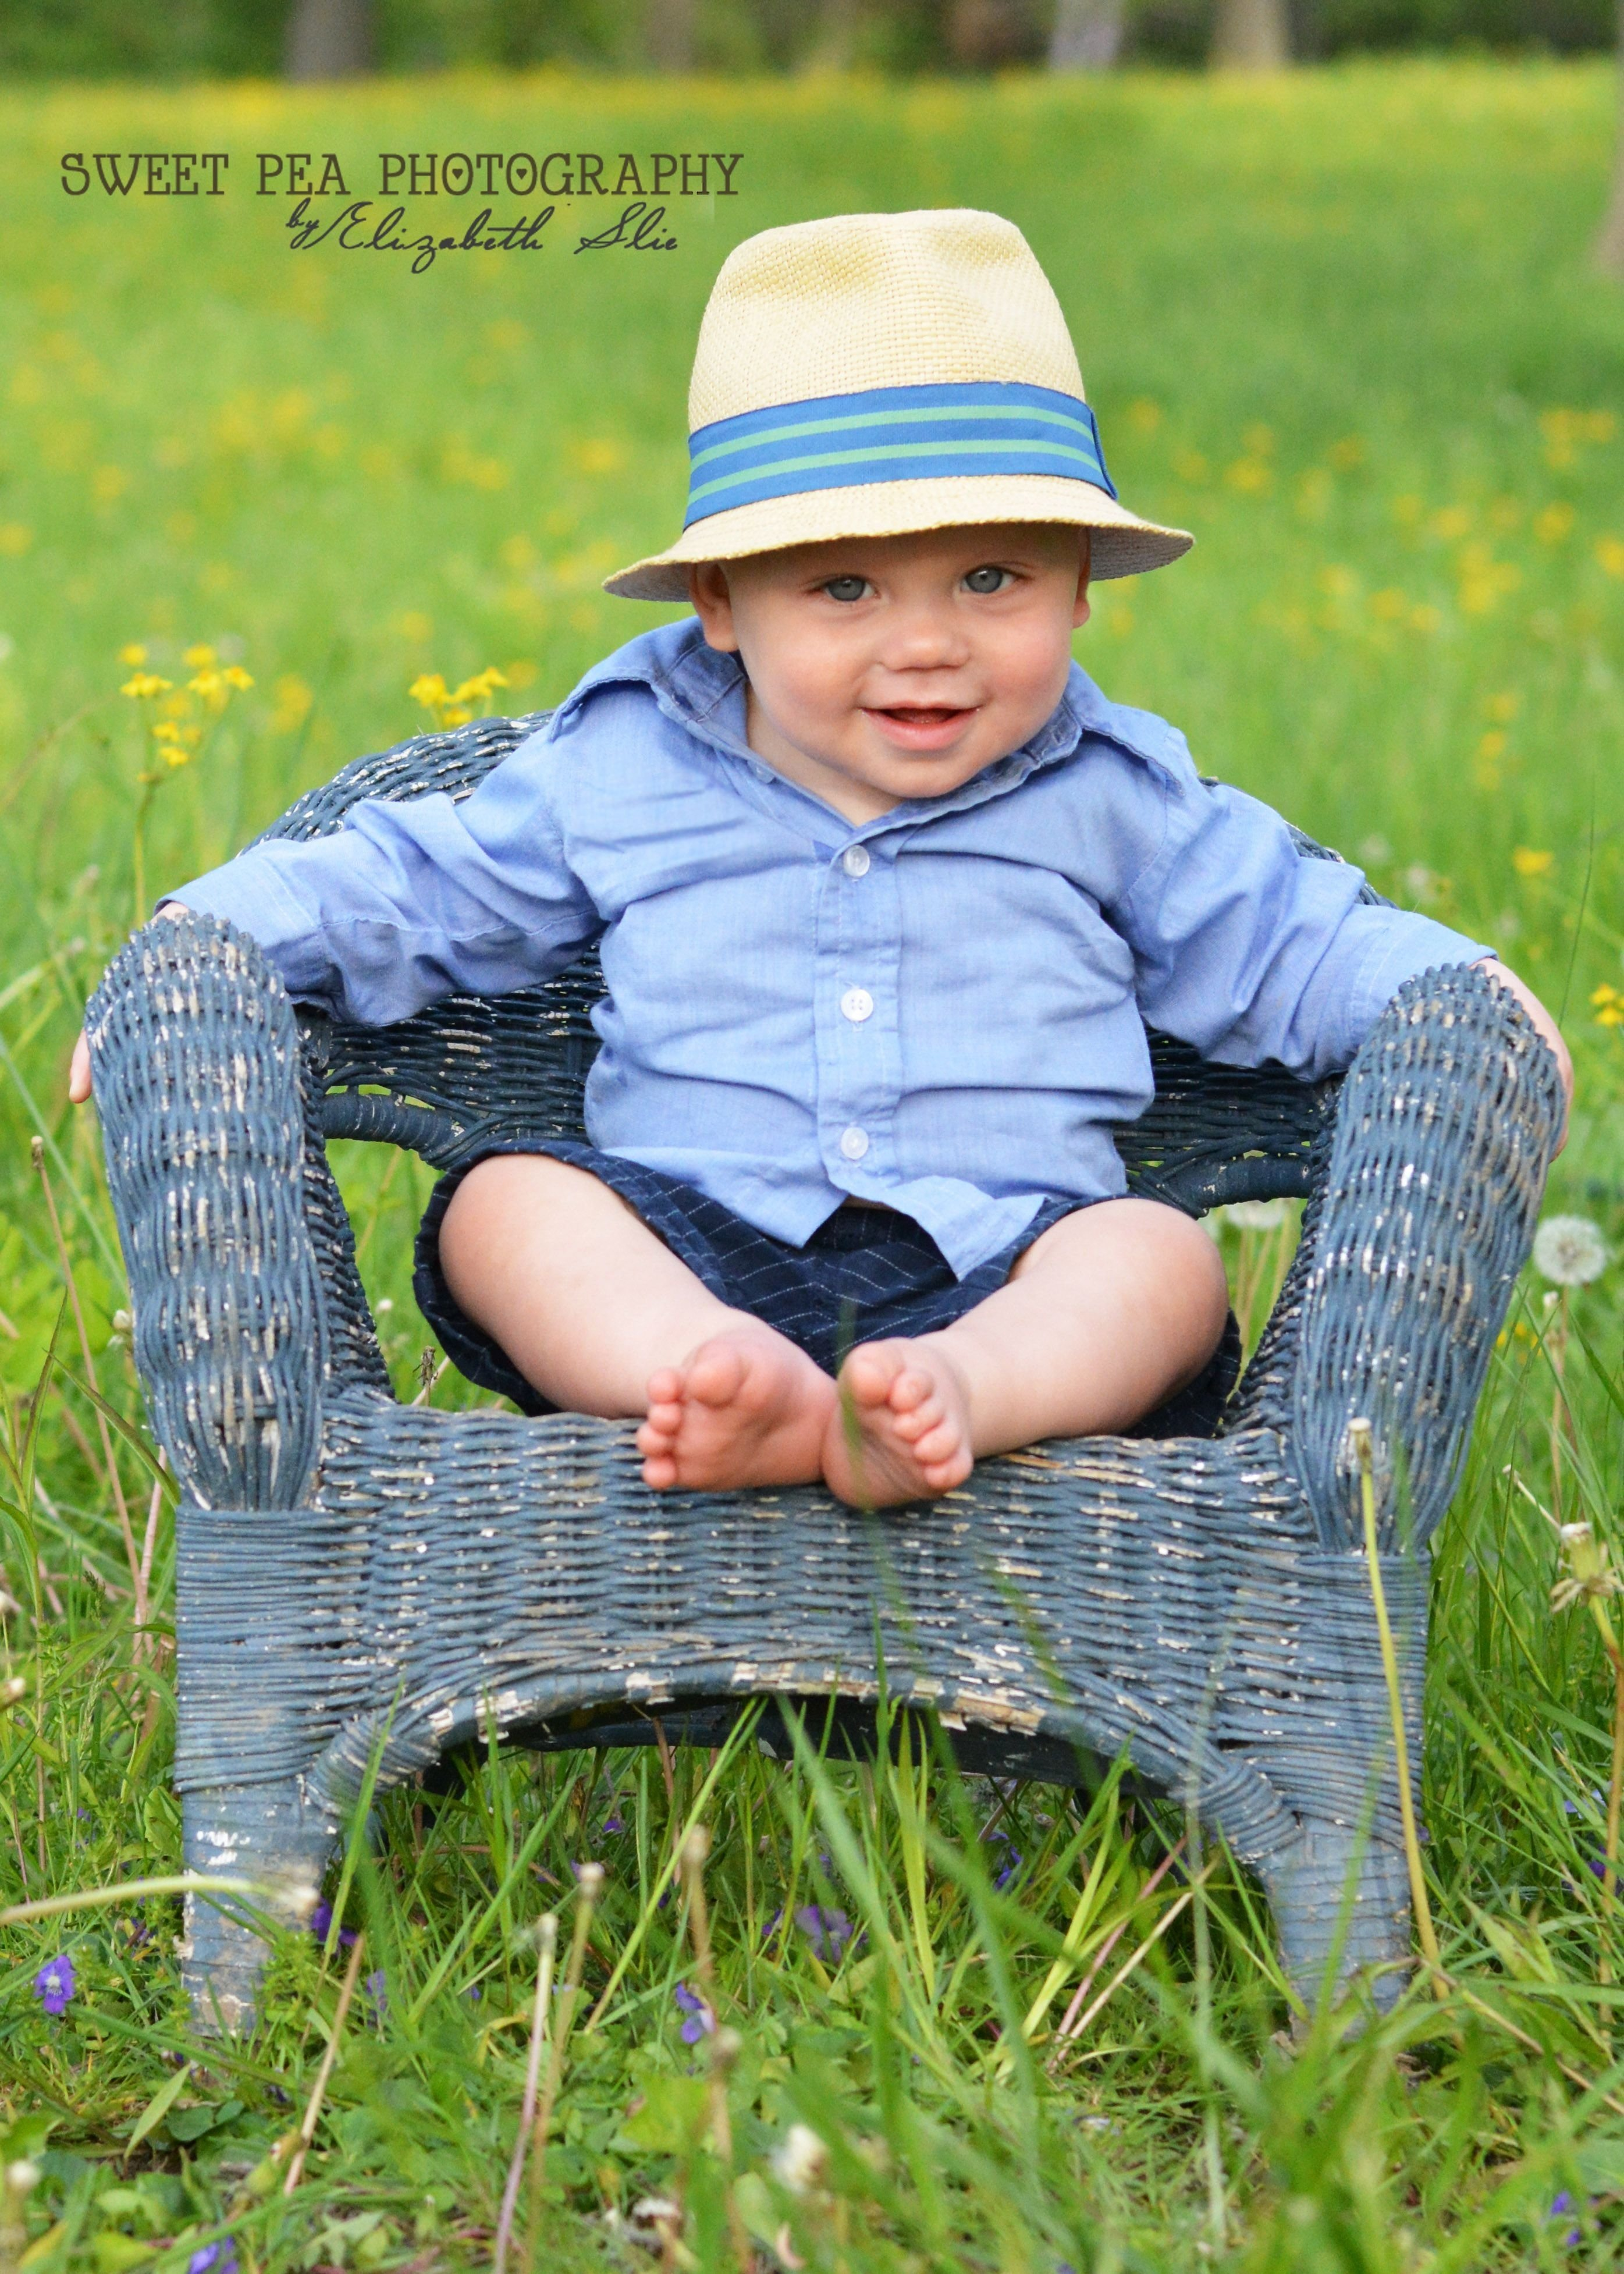 one year old boy birthday photo shoot ideas, 1 year old, country